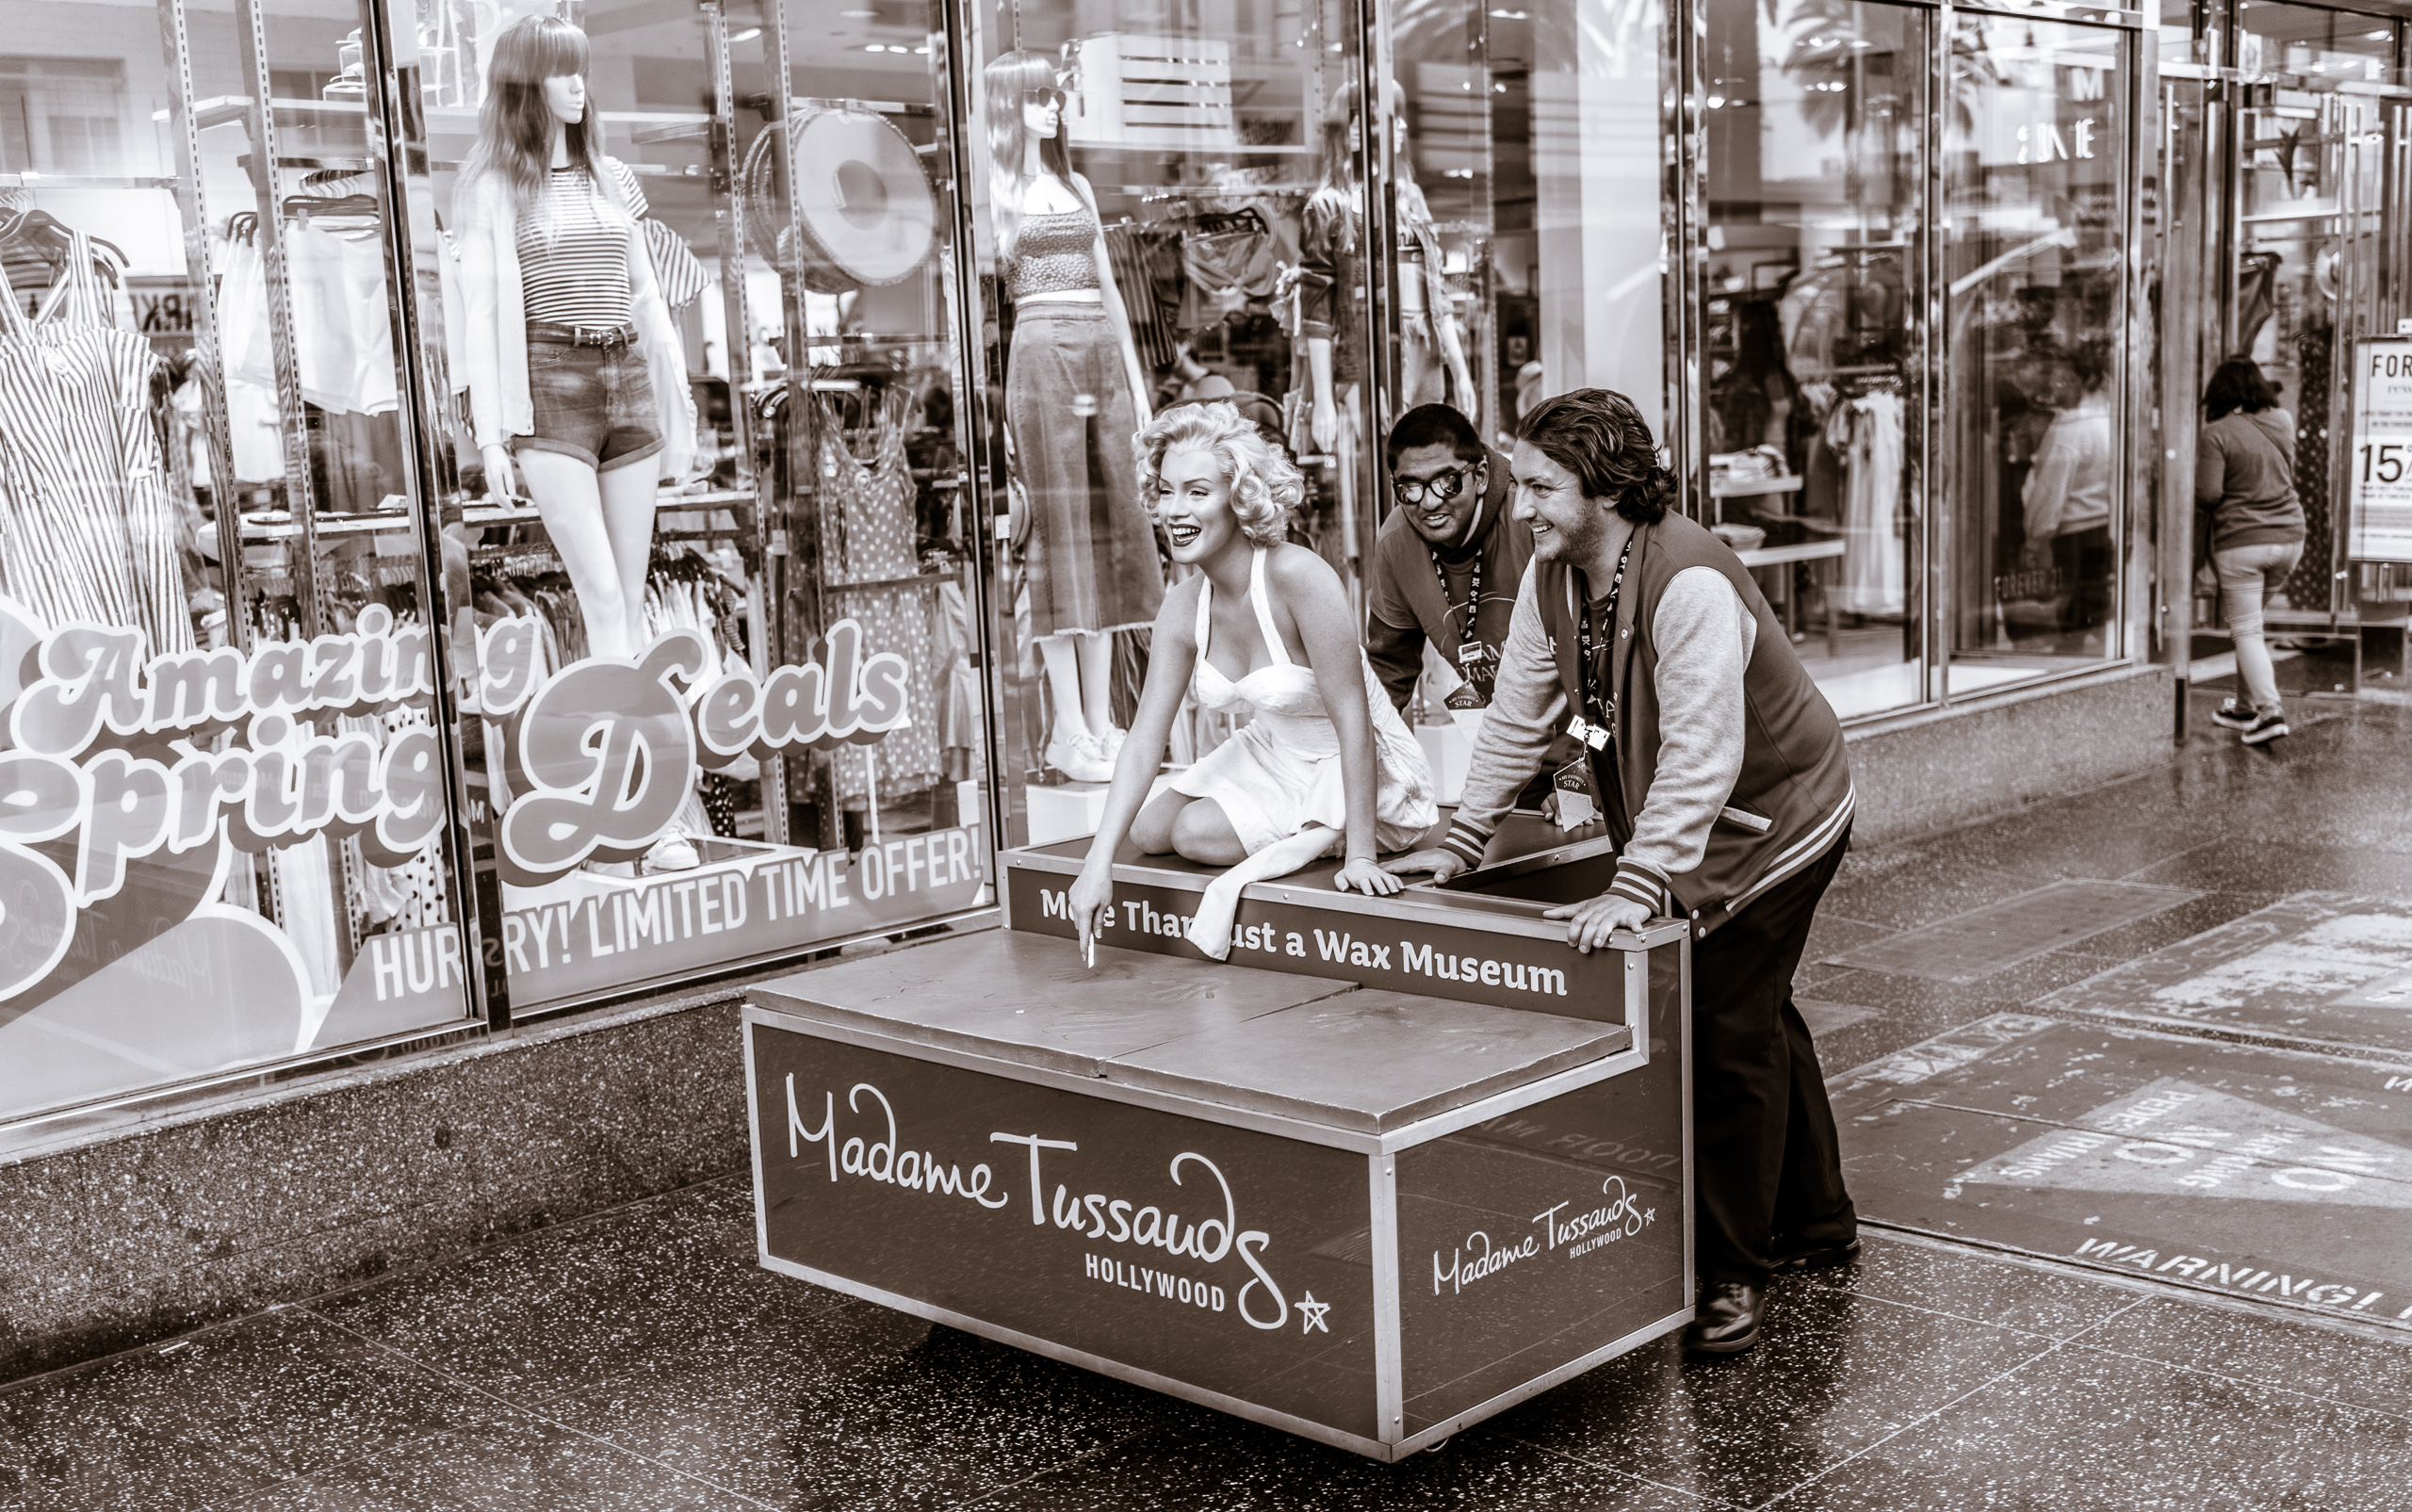 2 employees from Madame Tussauds Hollywood wheel a wax sculpture of Marilyn Monroe down Hollywood Blvd. From Marilyn's display spot at the Hollywood & Highland Metro Red Line exit, they wheel her west about a block to the Madame Tussauds building.